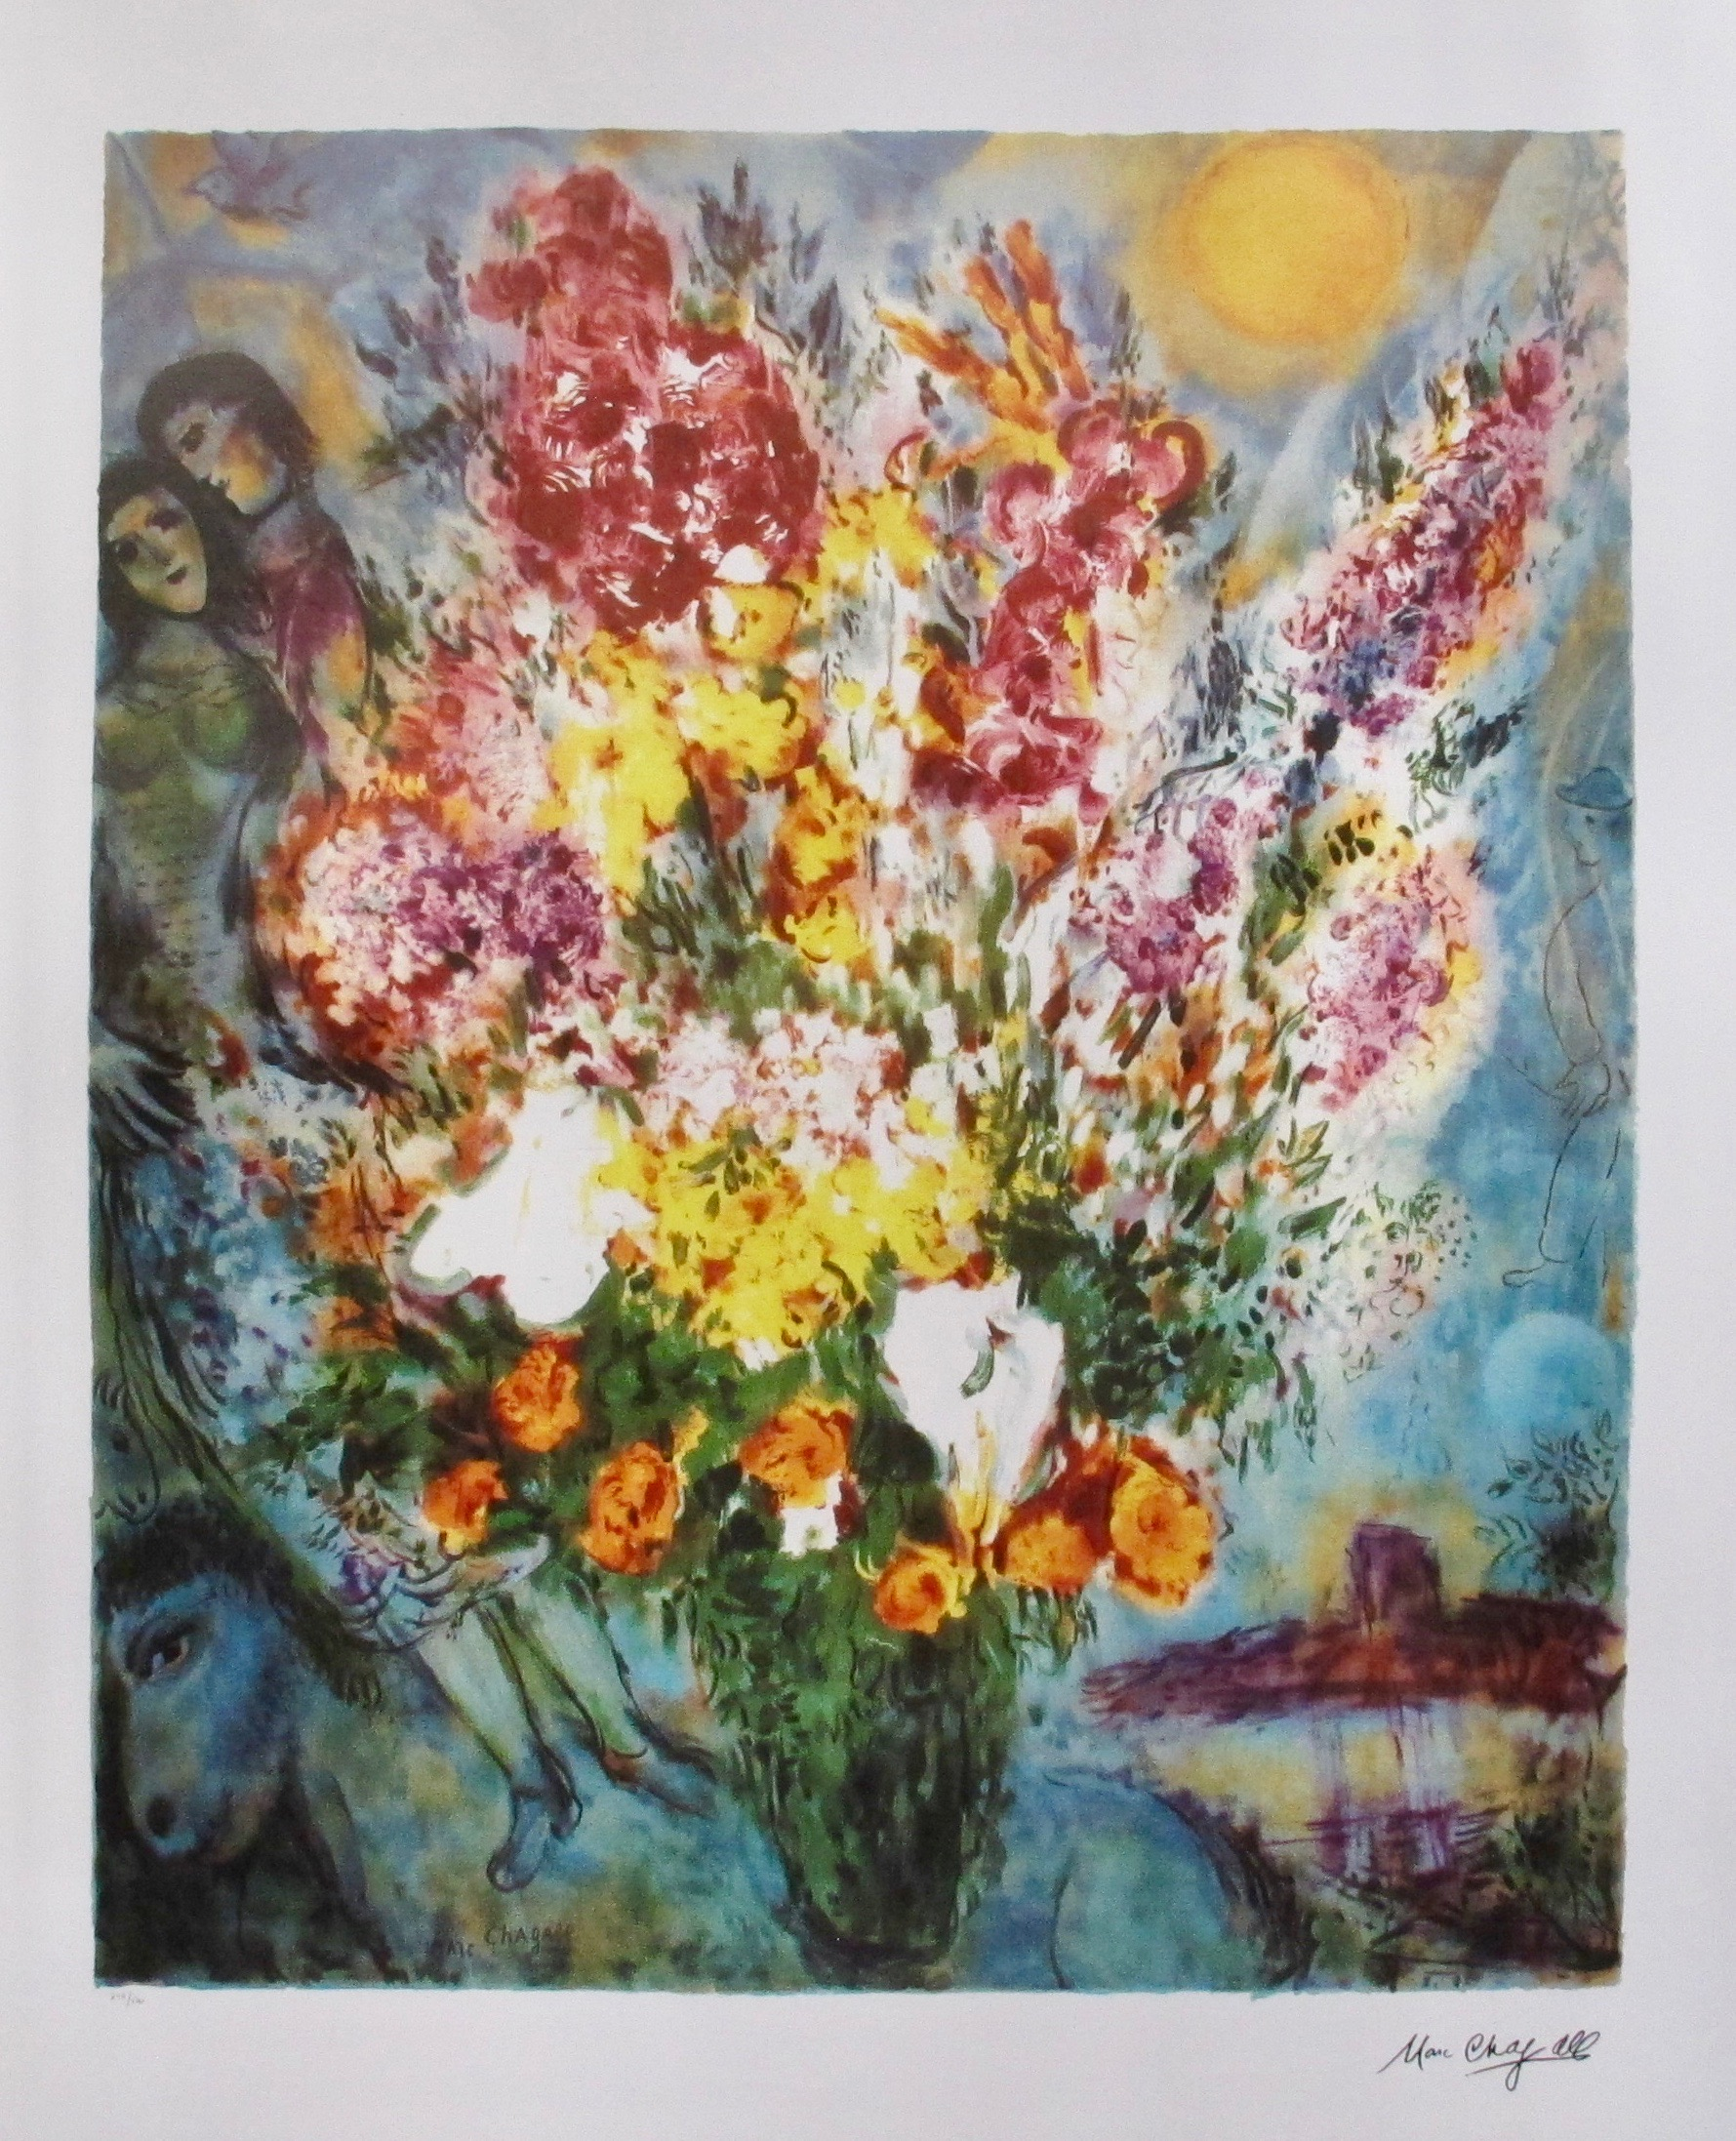 Marc Chagall ORIGINAL BOUQUET Limited Edition Facsimile Signed Lithograph